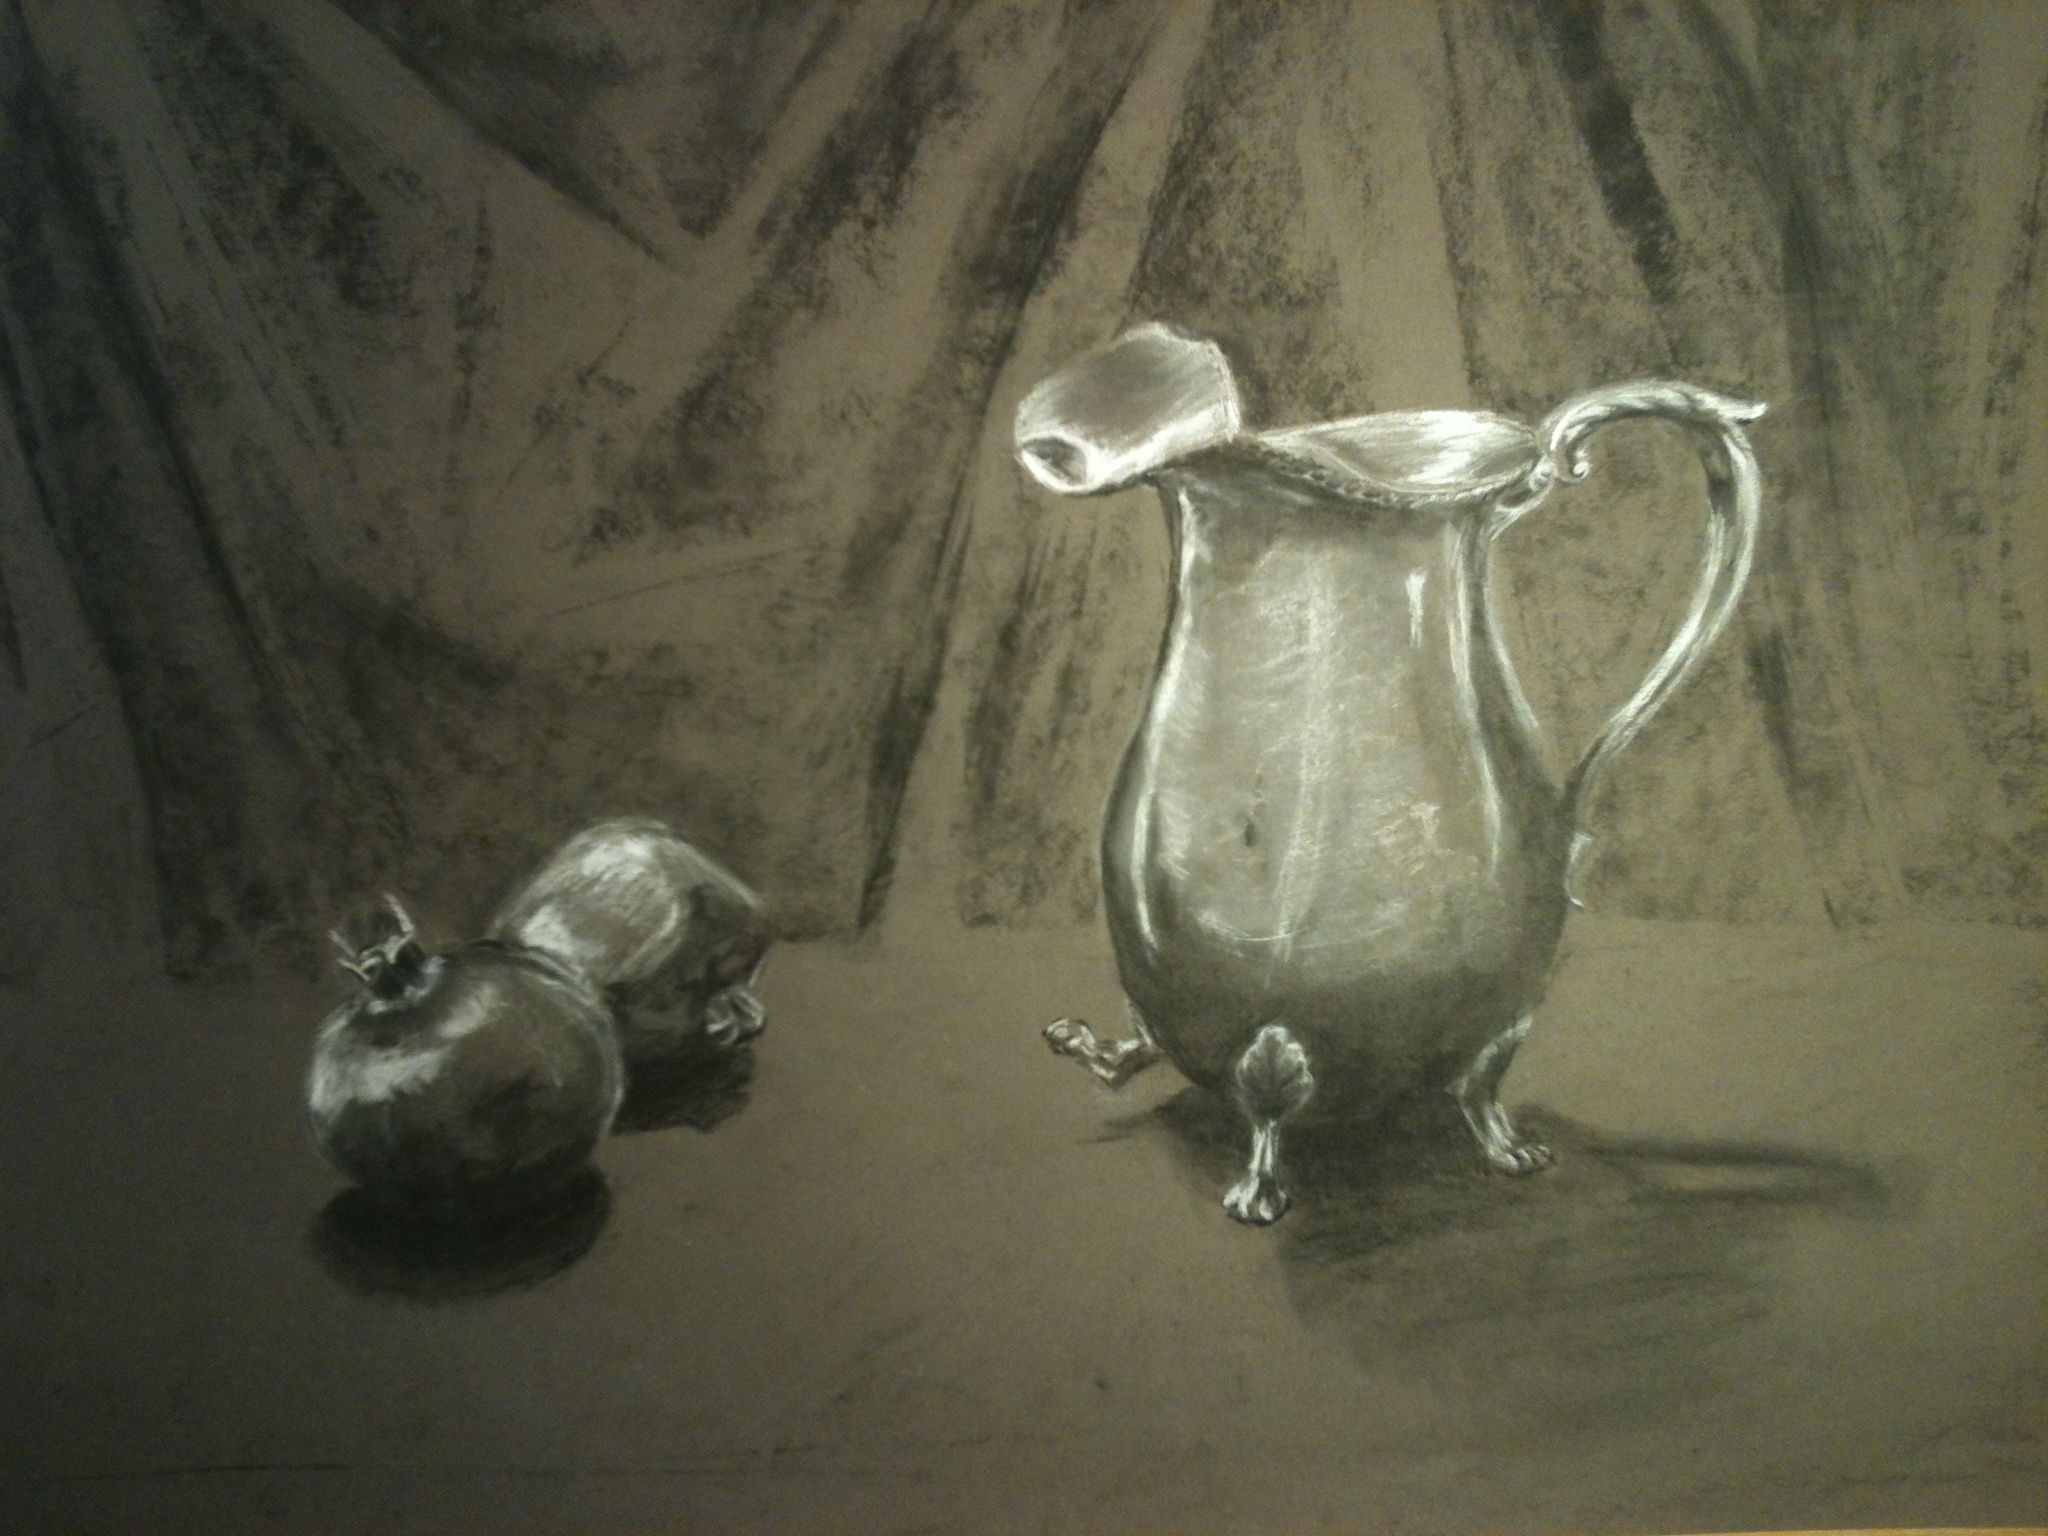 The Dancing Pitcher